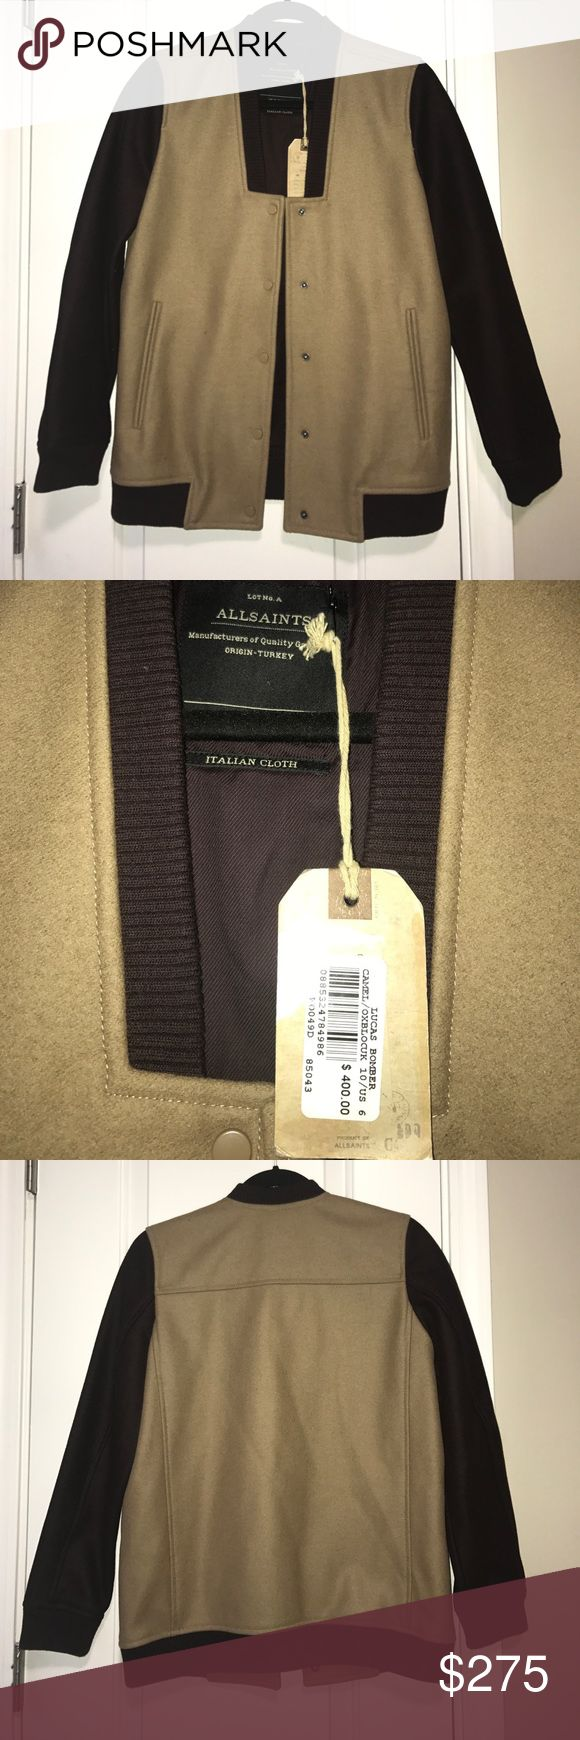 AllSaints jacket never been worn. Maroon and tan Never been worn tag still on allsaints jacket All Saints Jackets & Coats Utility Jackets